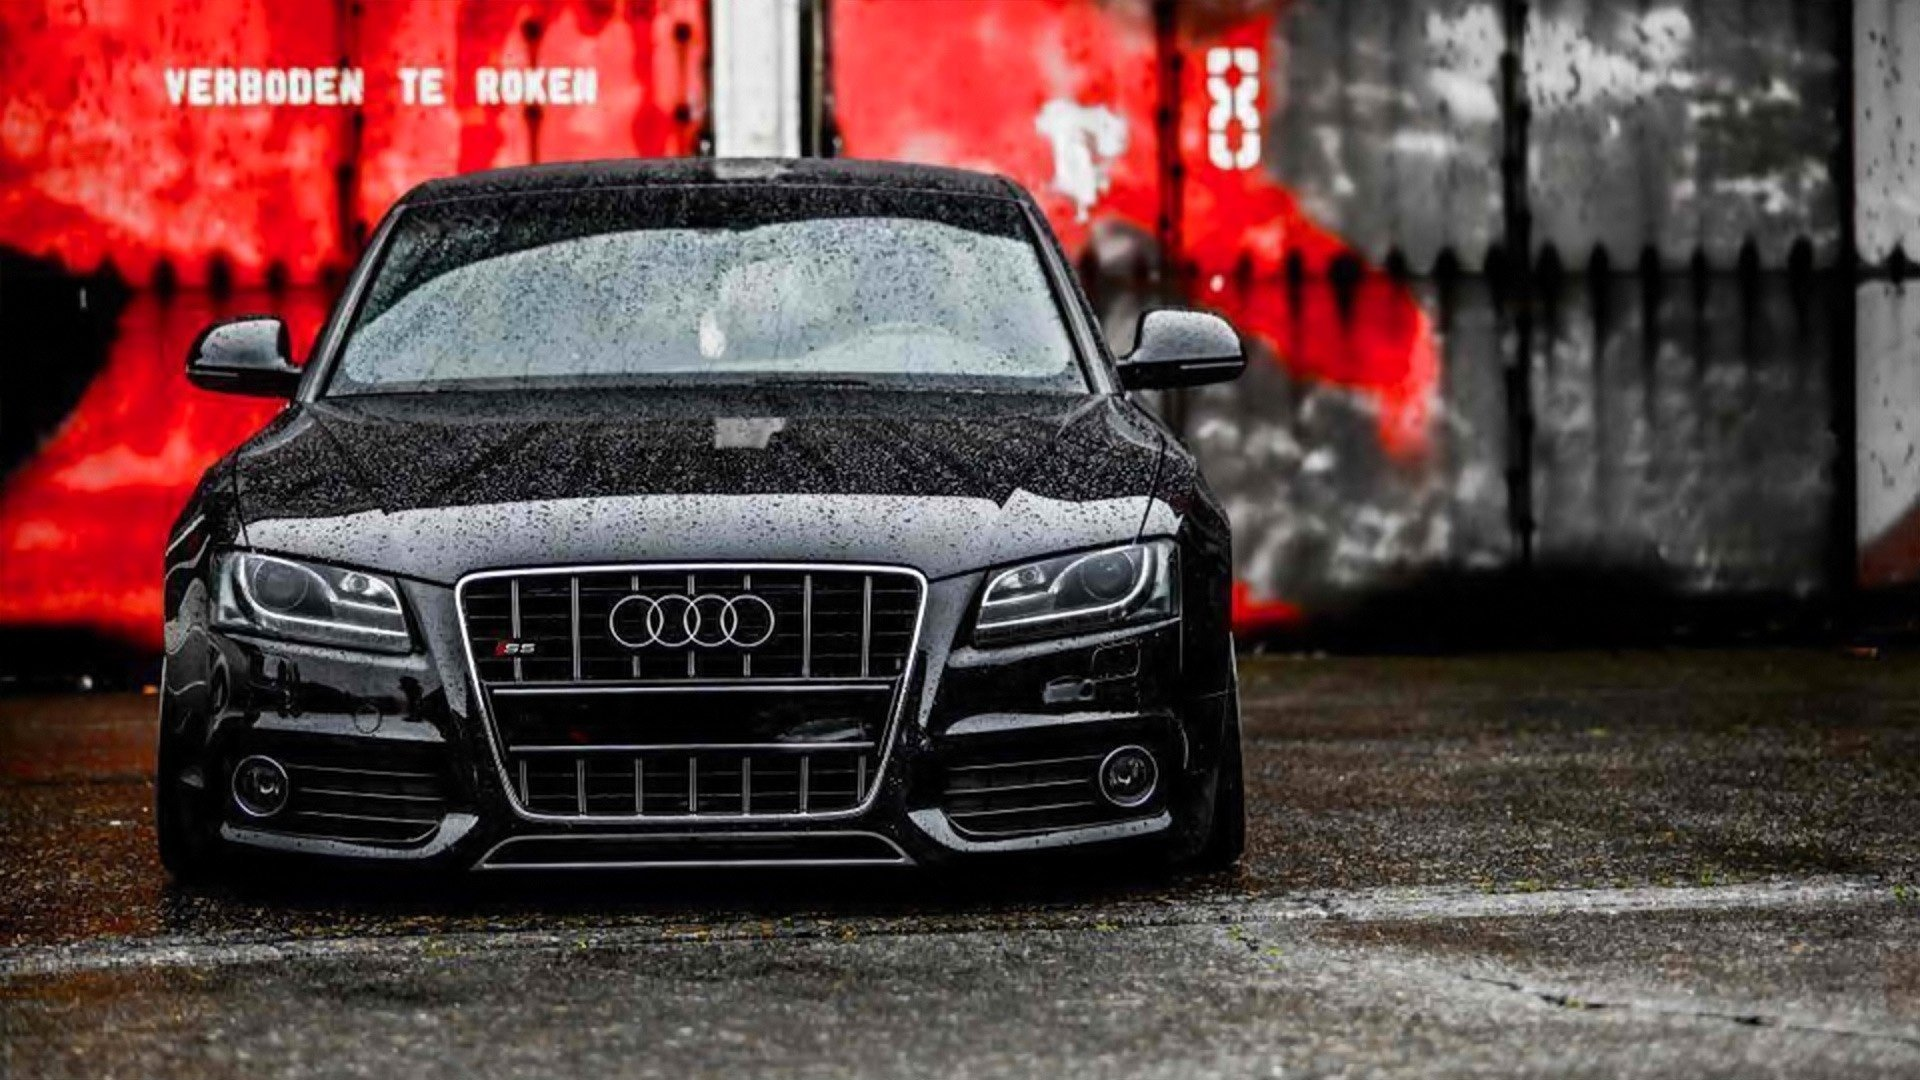 40 Audi S5 Hd Wallpapers Background Images